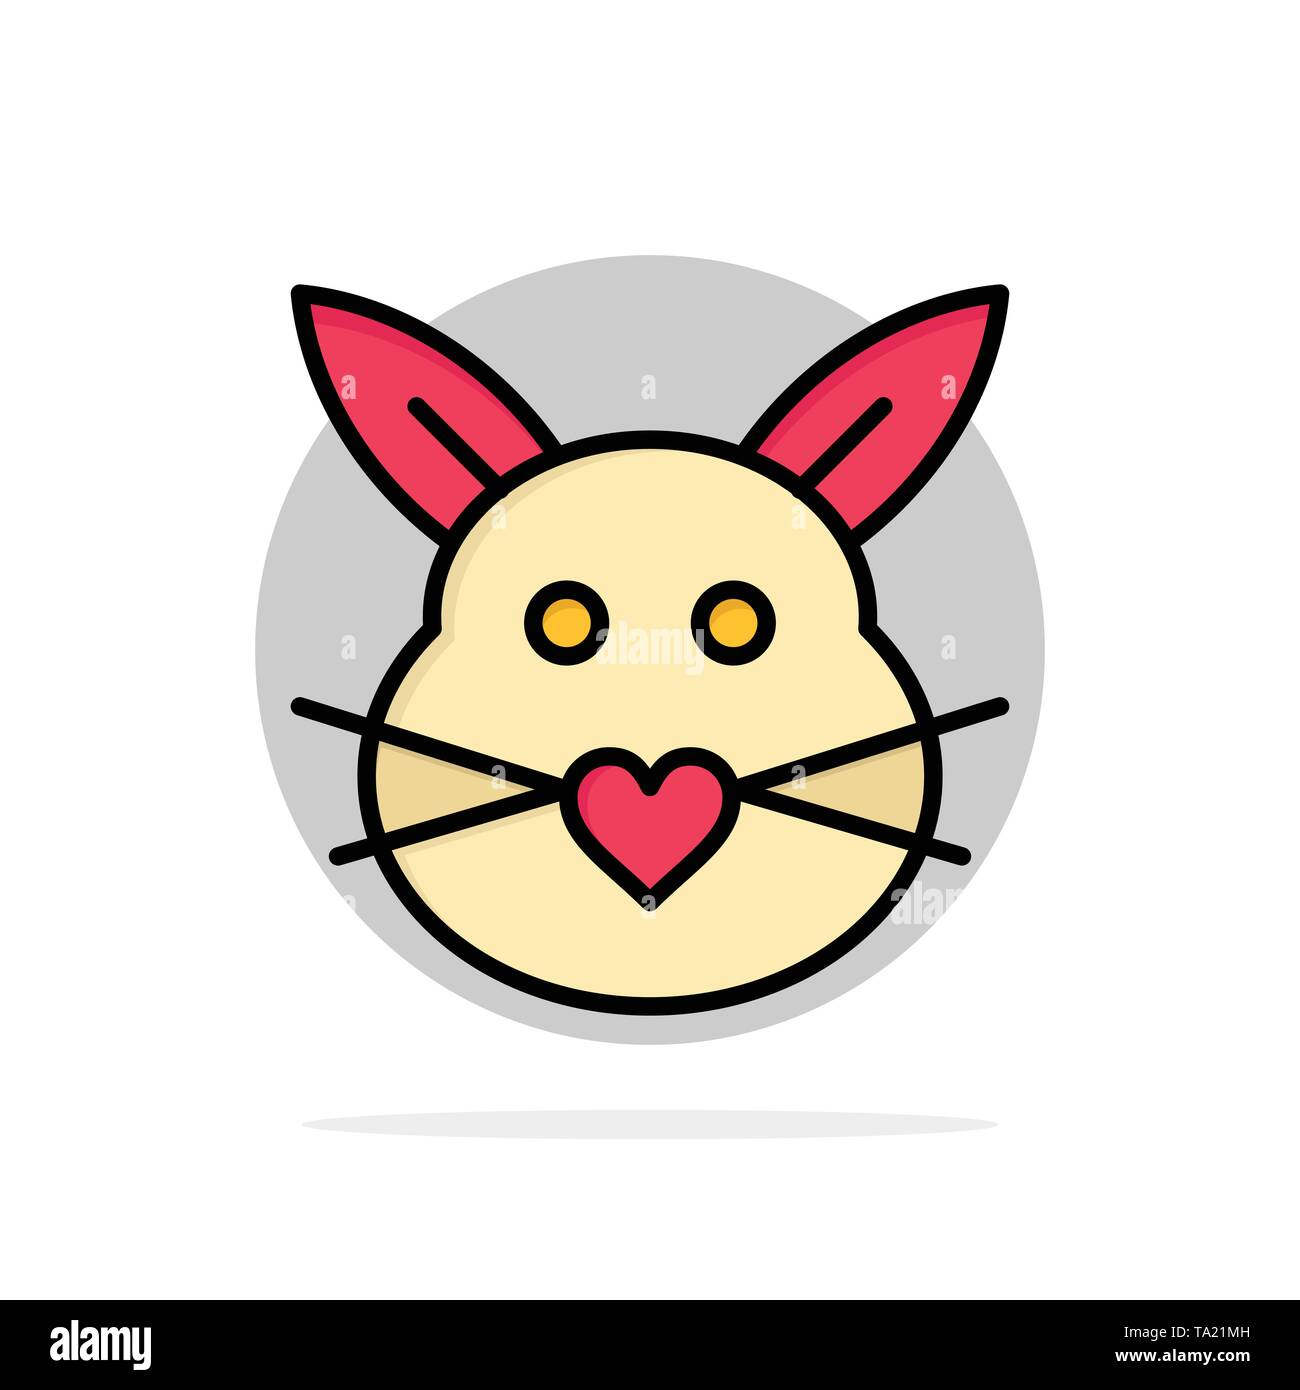 Rabbit, Bunny, Love, Cute, Easter Abstract Circle Background Flat color Icon - Stock Image